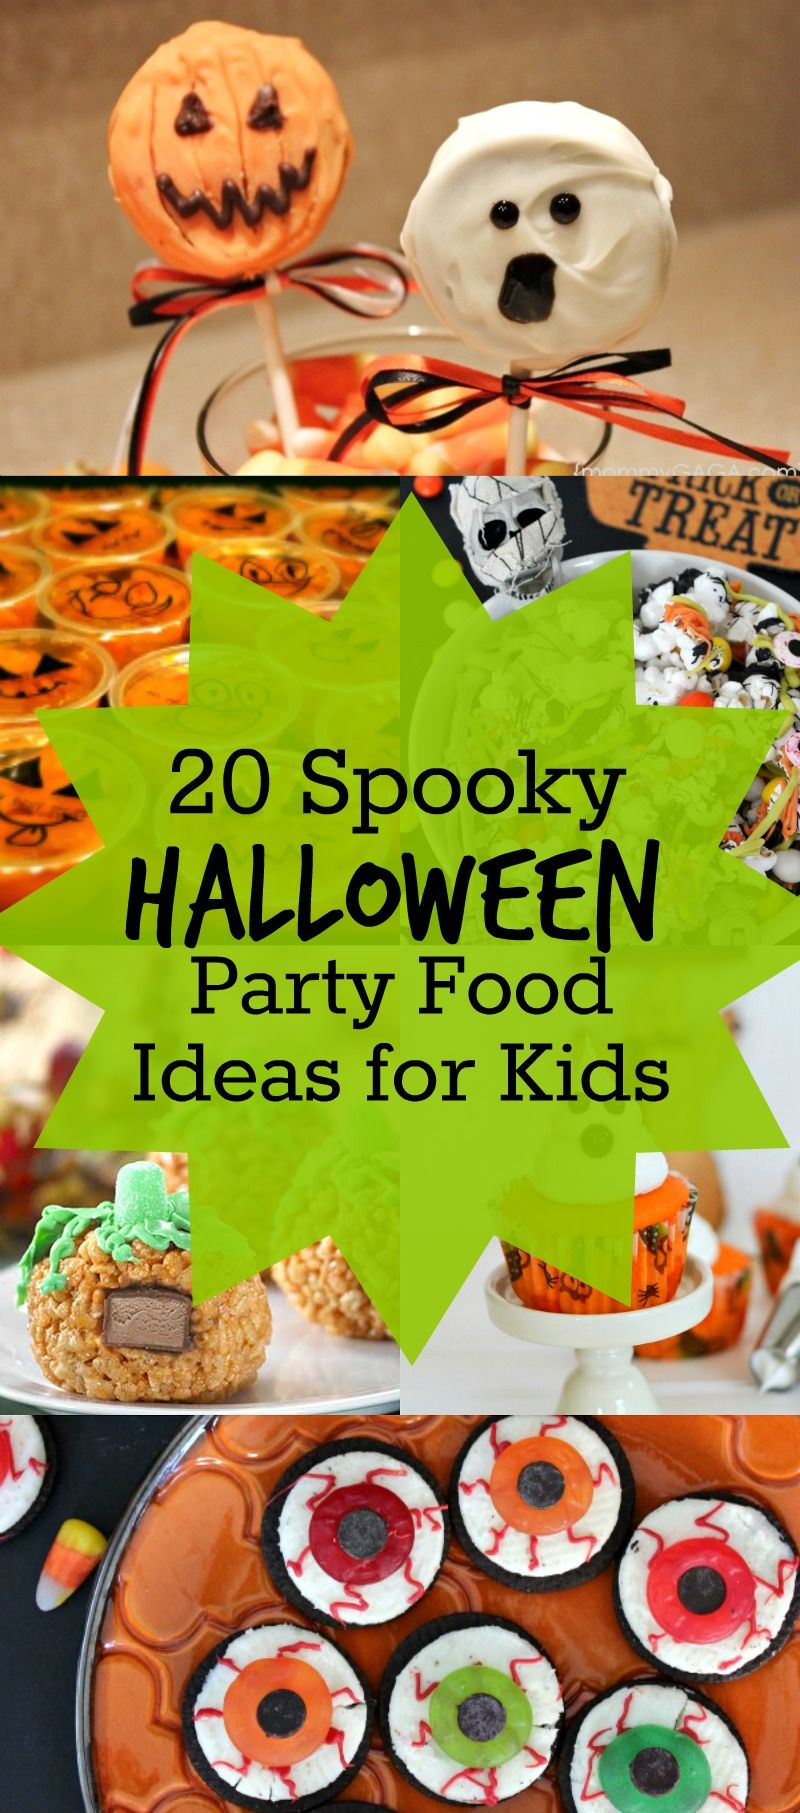 20 Spooky Halloween Party Food Ideas and Snacks for Kids! | Creepy ...